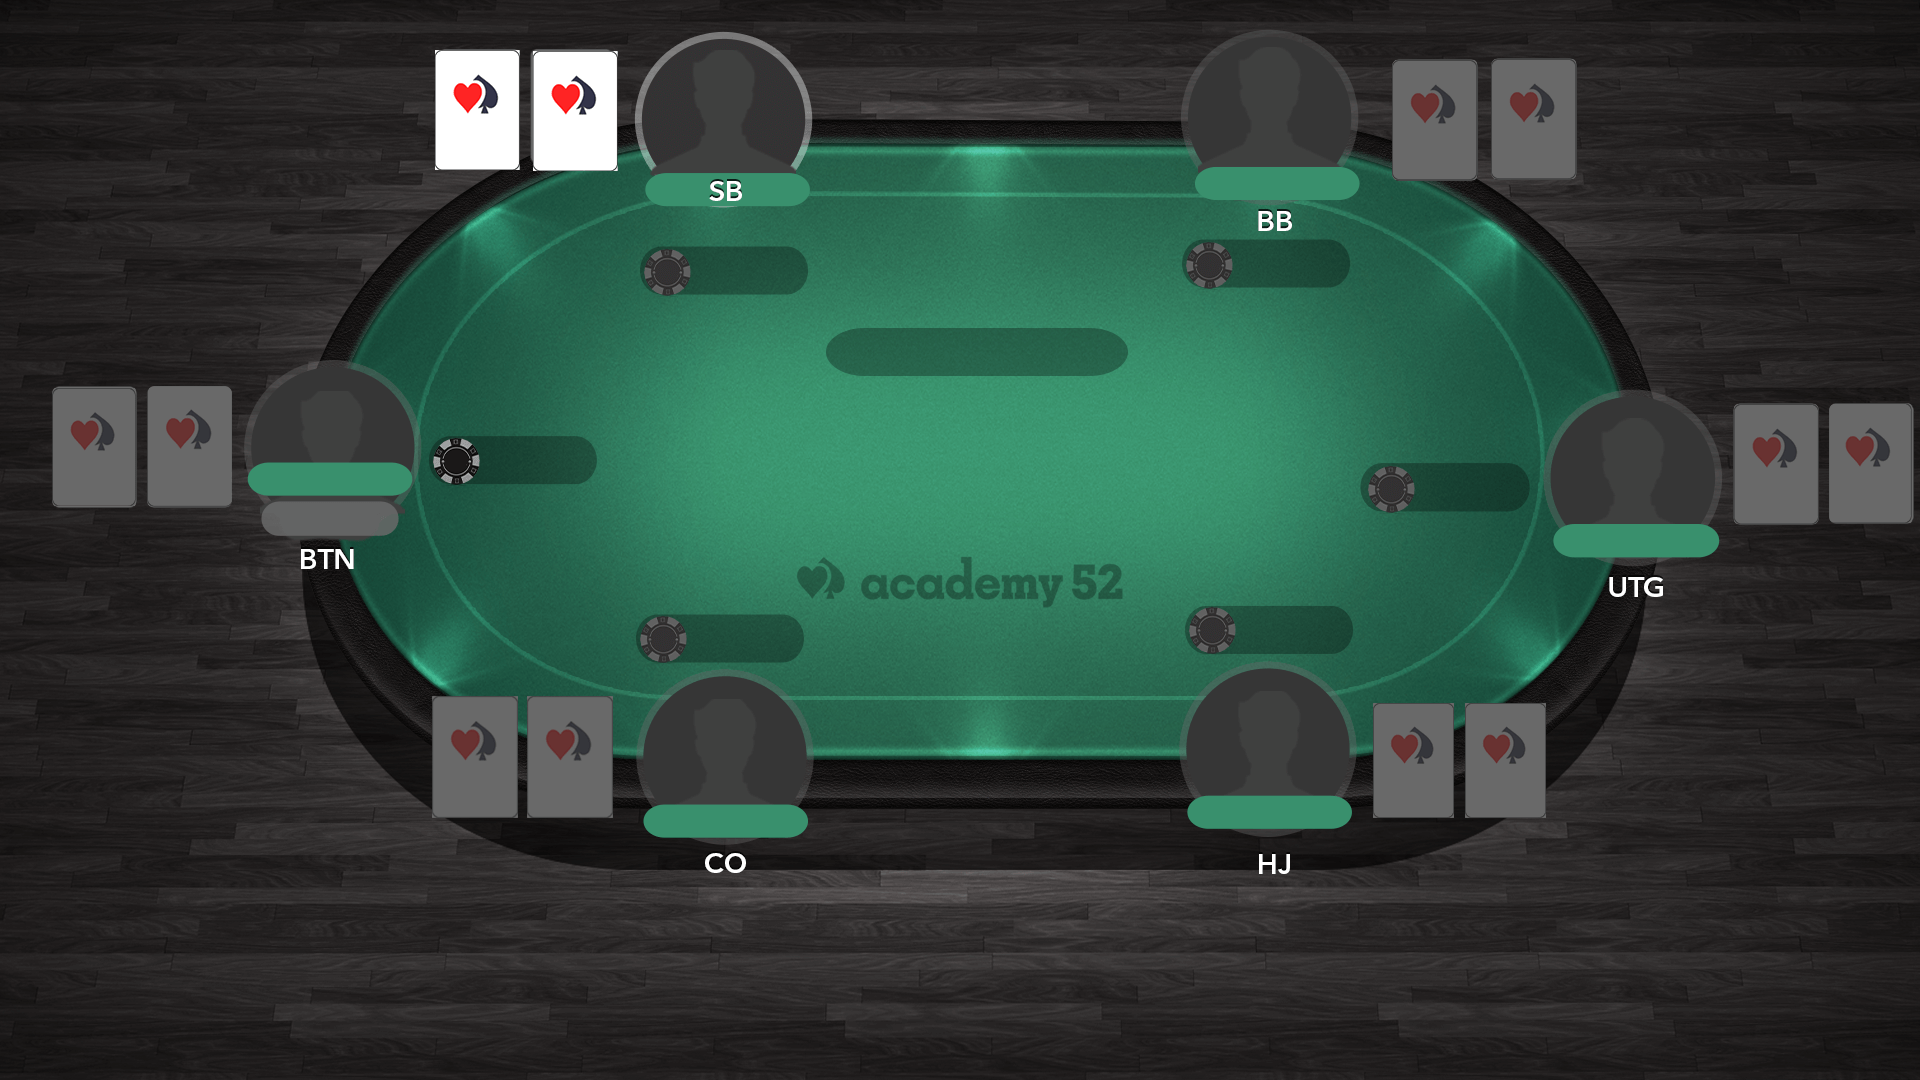 Small Blind (SB) dan Big Blind (BB) |  Akademi Poker |  Akademi52